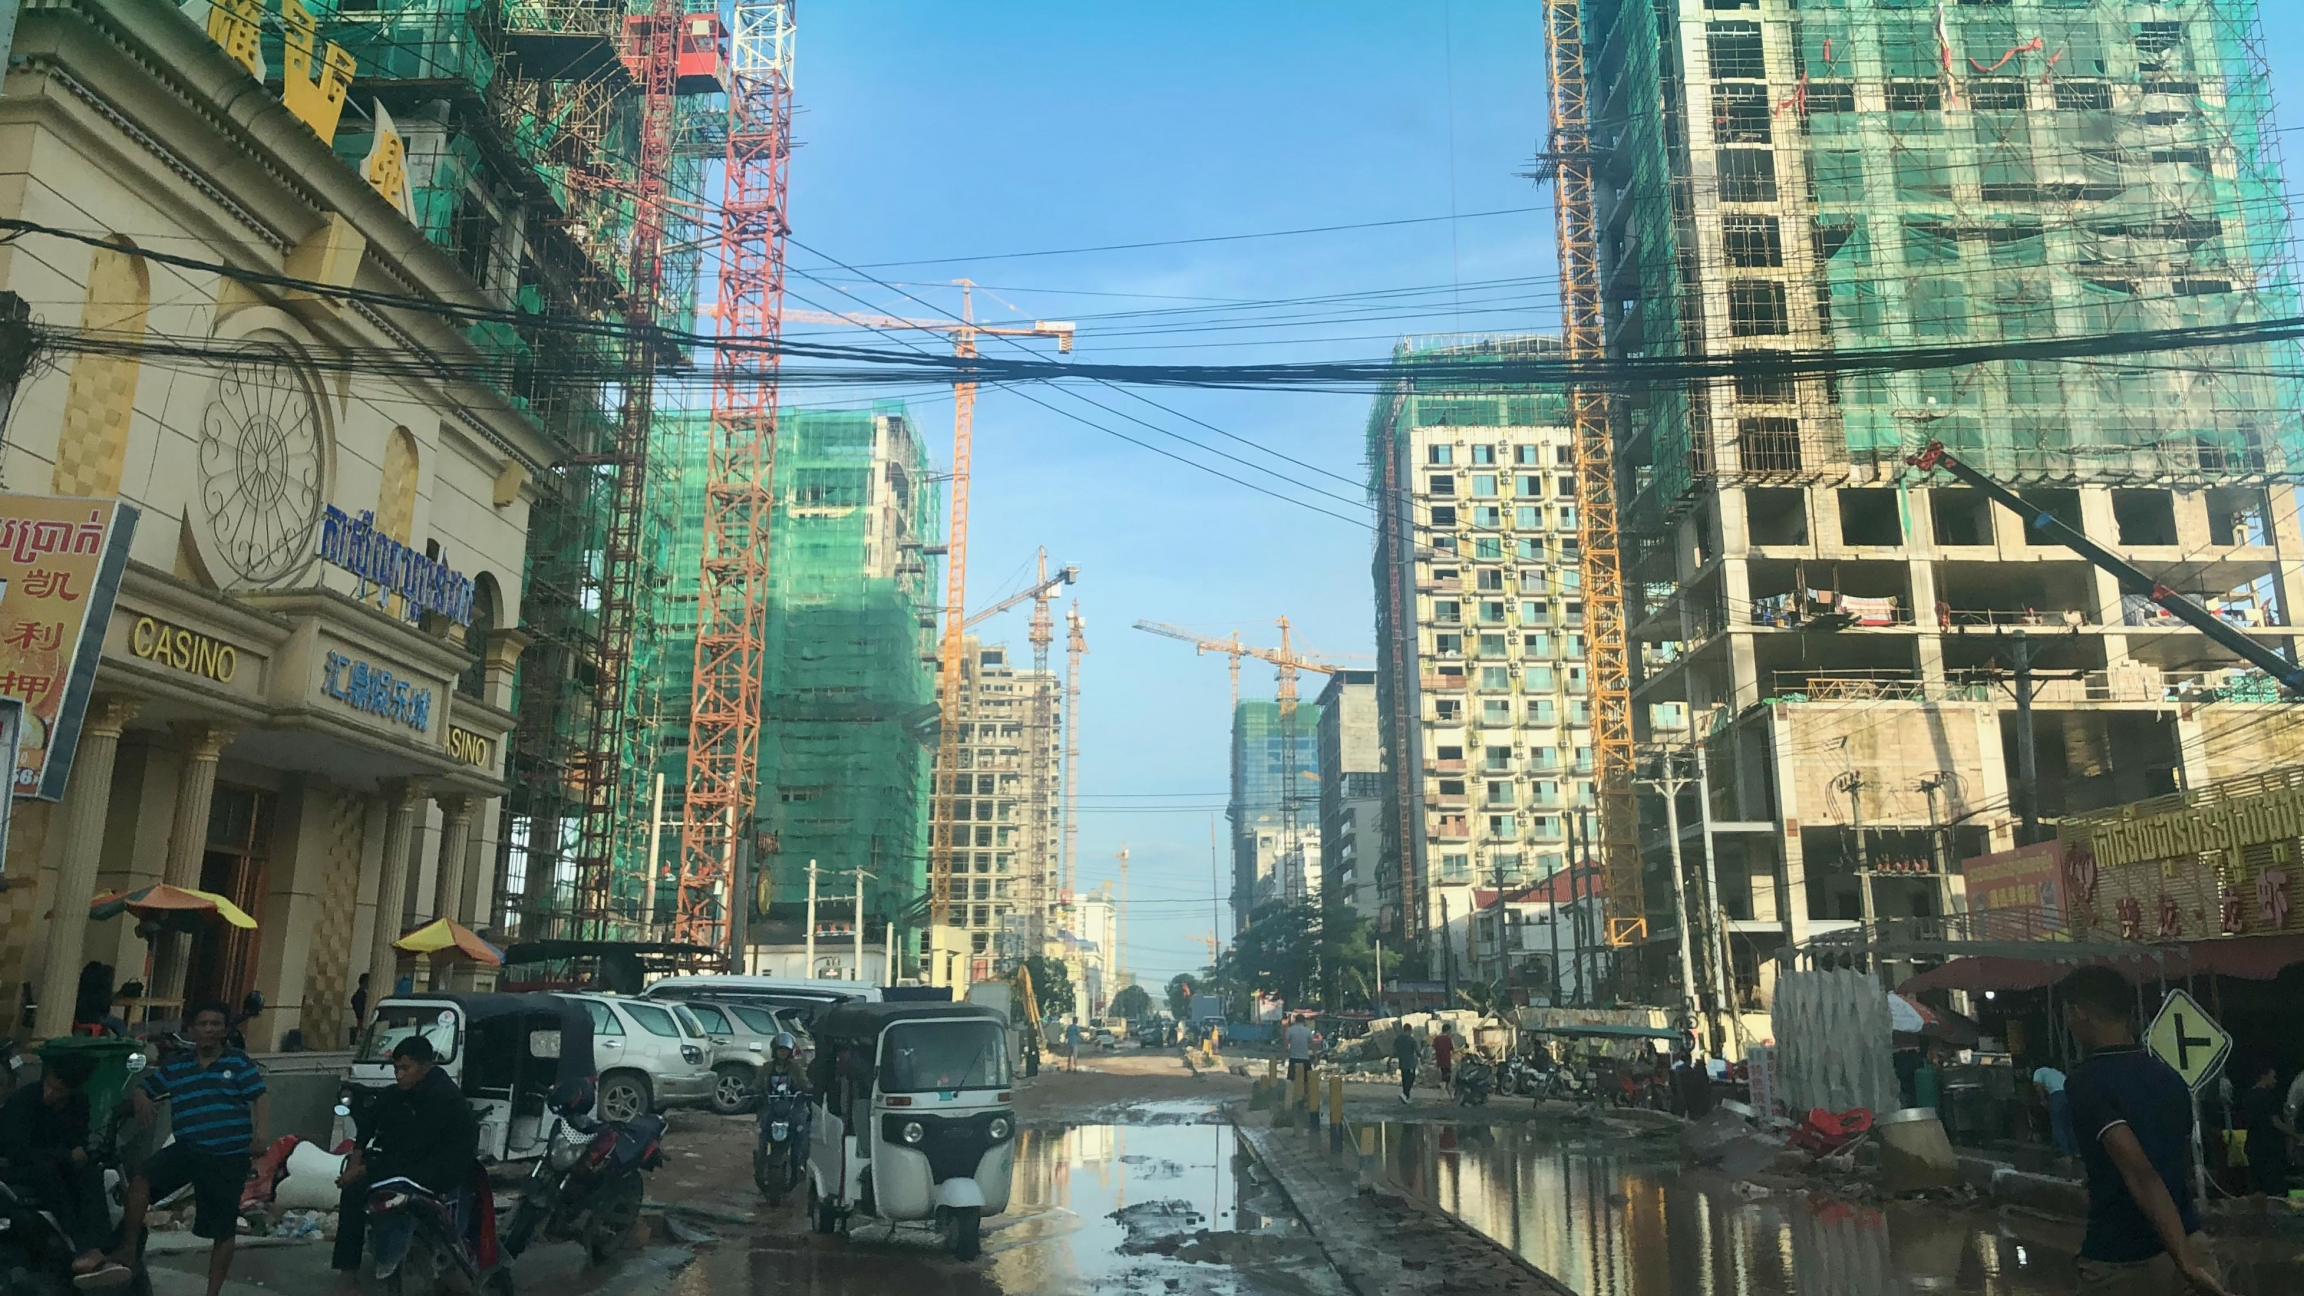 Sihanoukville, Cambodia, has become a construction site in recent years, with dozens of Chinese projects to build business and apartment high-rises, and with roads under construction around town.